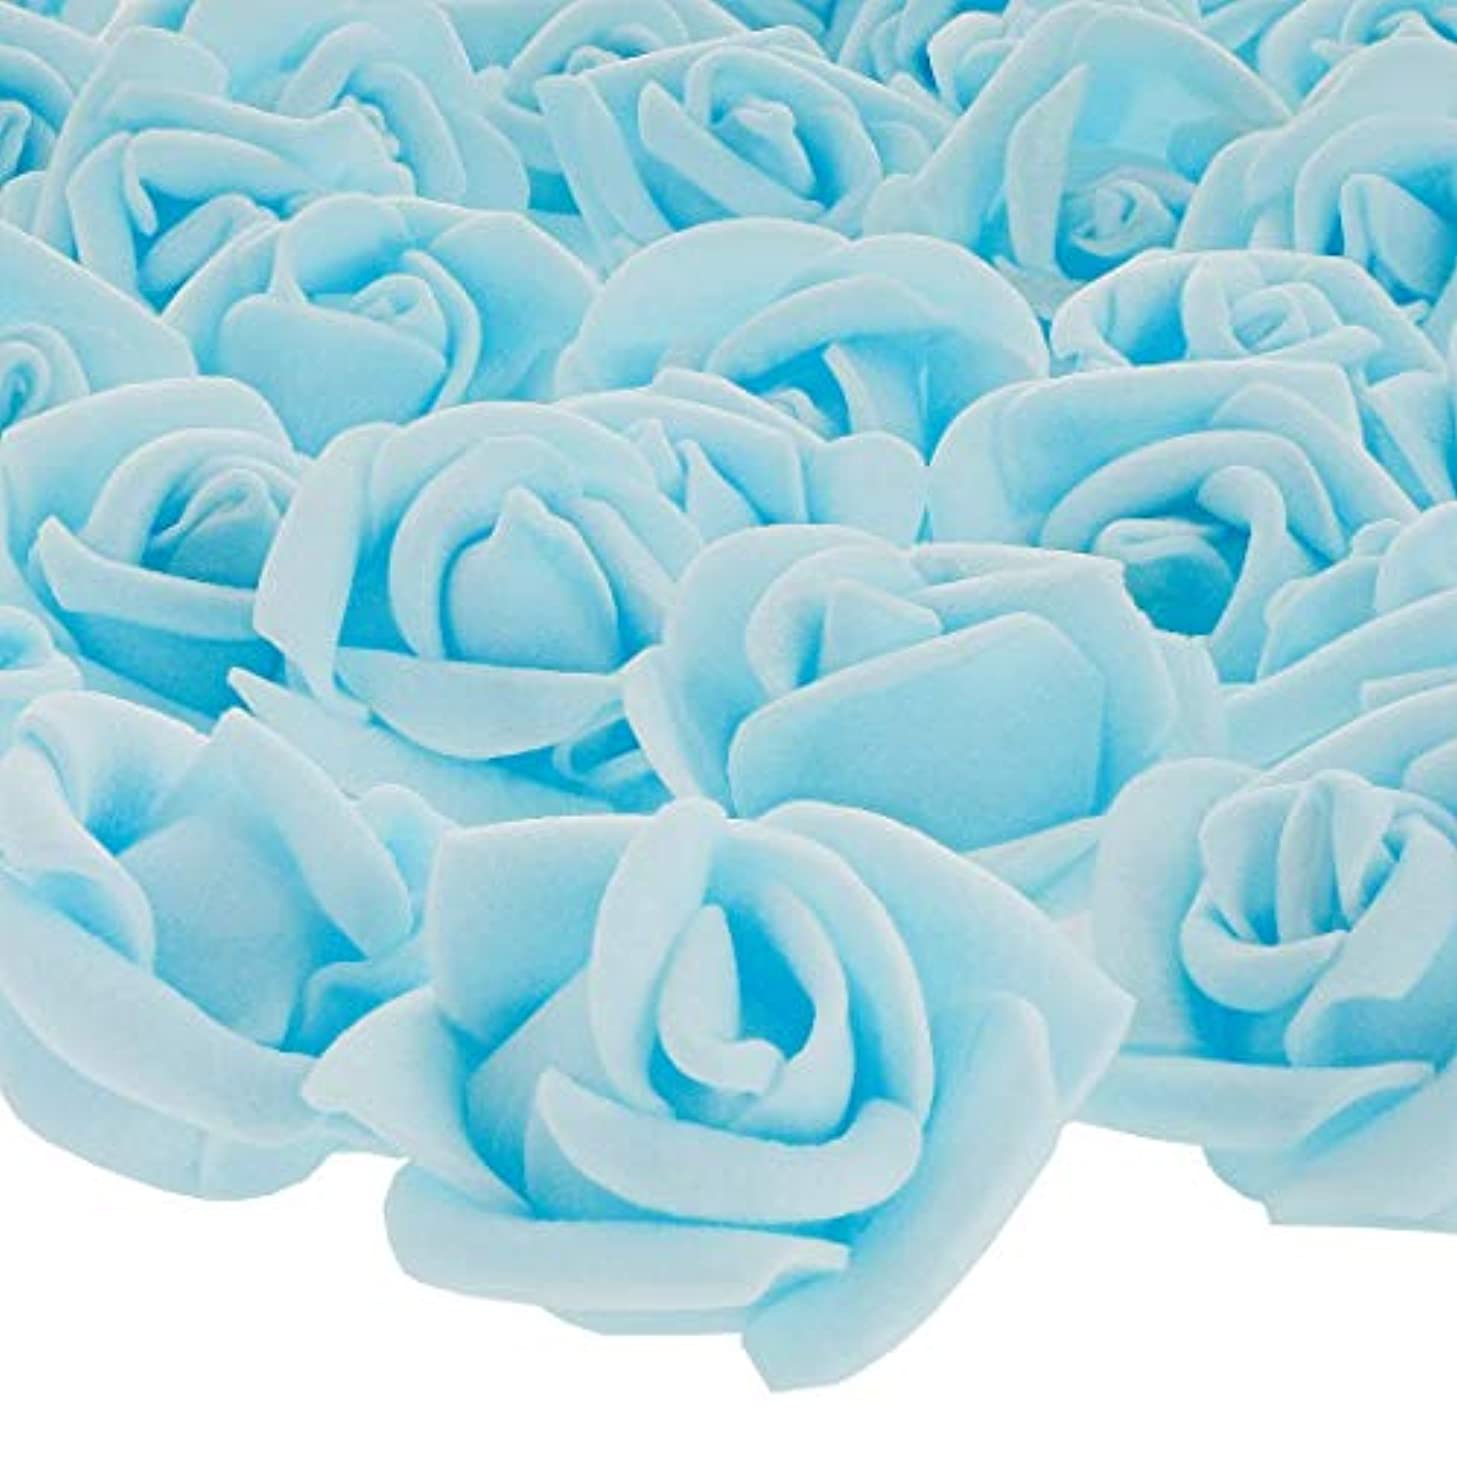 Bright Creations 200-Pack Light Blue Rose Flower Heads for DIY Crafts, Weddings, Decor, 3 x 2.5 Centimeters